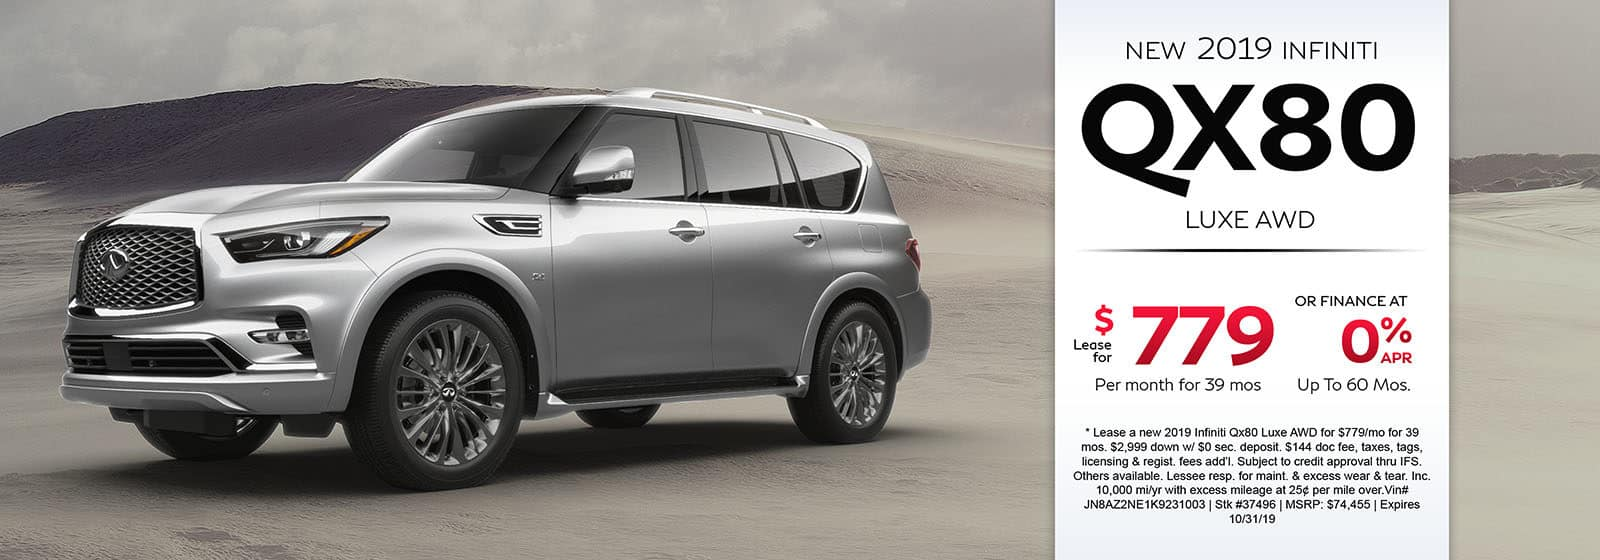 Lease a new 2019 INFINITI QX80 Luxe AWD for $779 a month for 39 months. Or get special 0% APR financing for up to 60 months